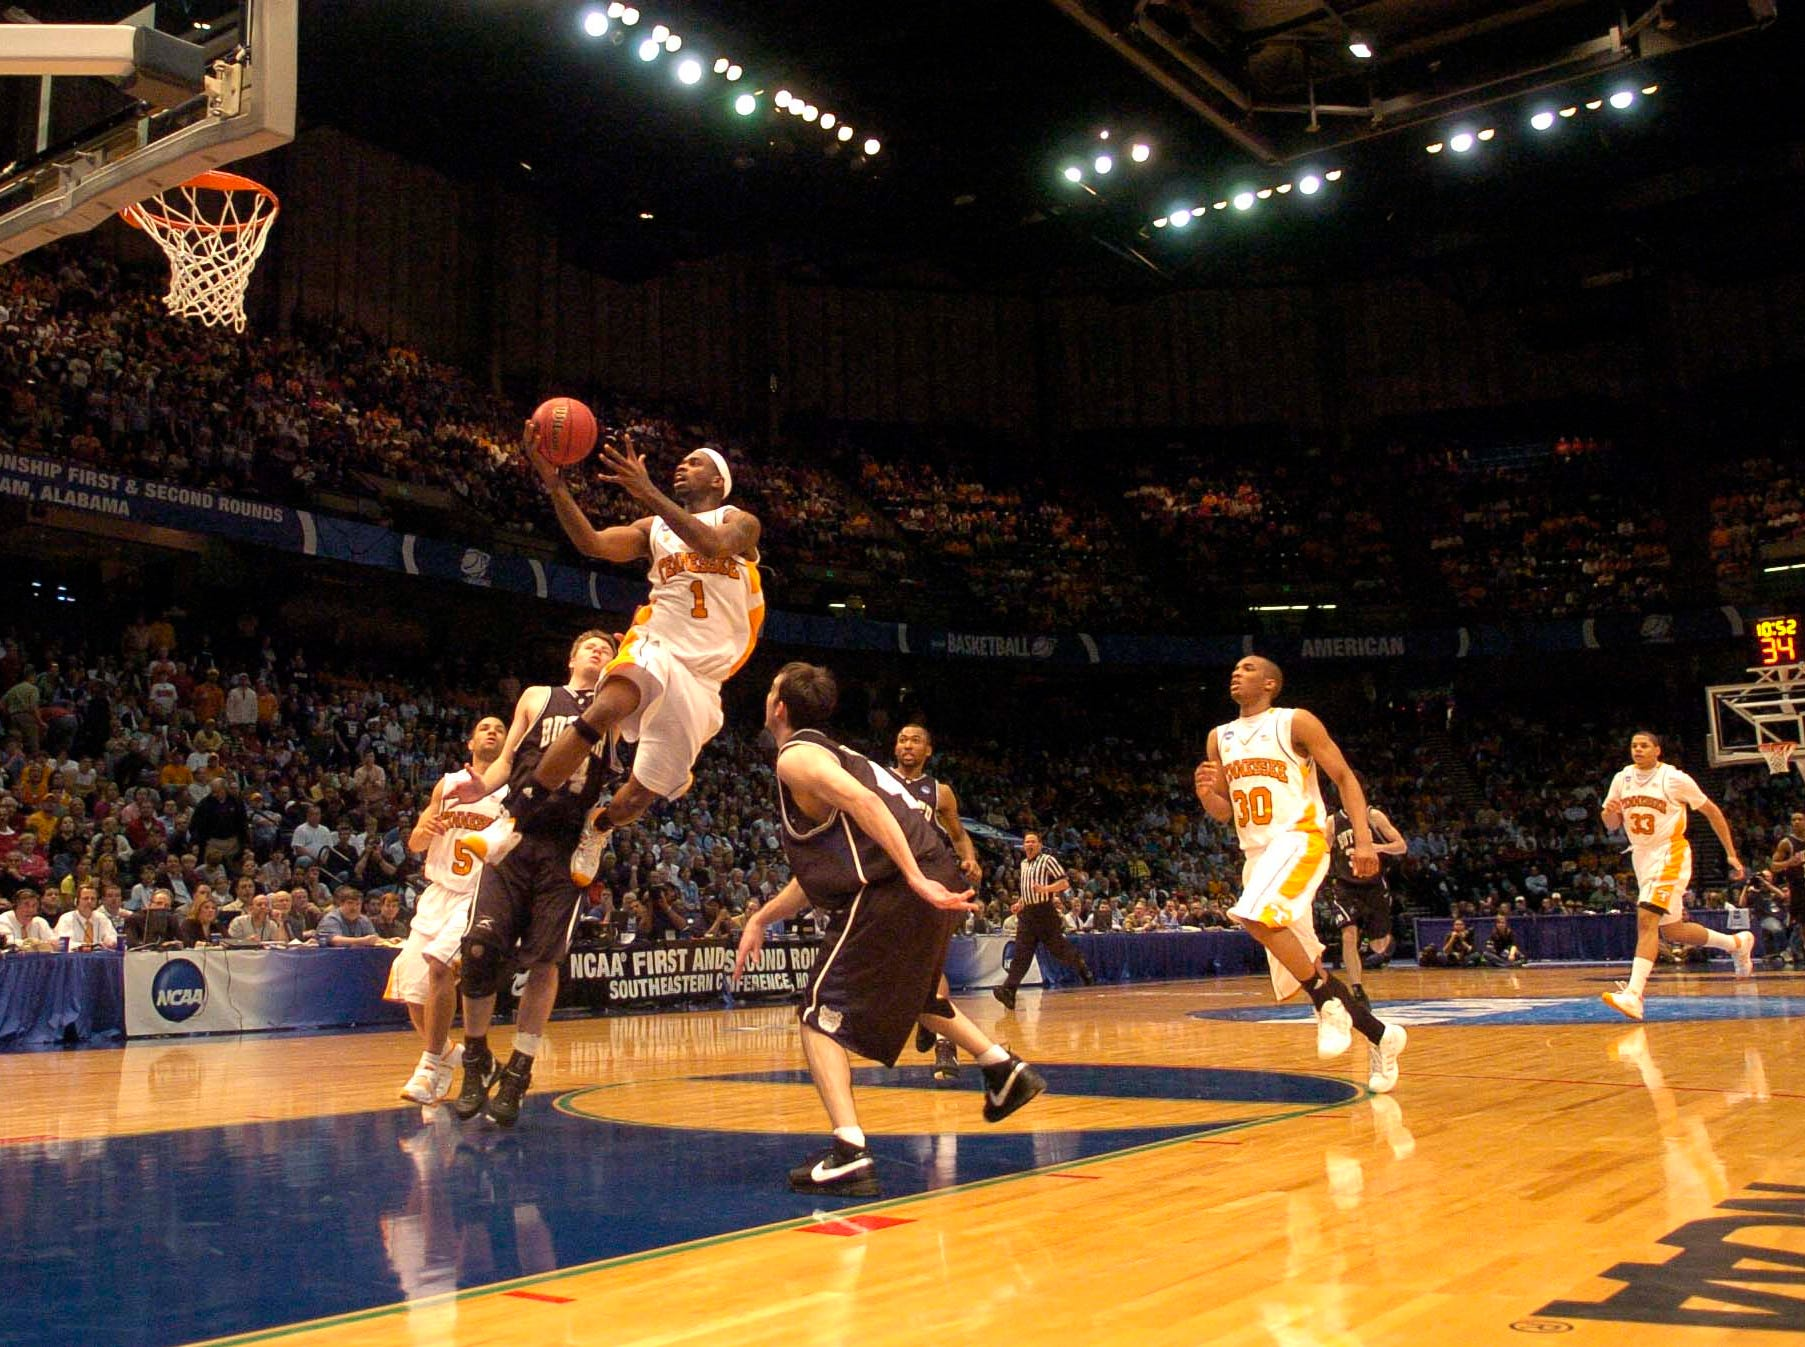 Tennessee's Tyler Smith goes for a layup against Butler's at the Birmingham Jefferson Convention Center in Birmingham, Alabama during second round play in the 2008 NCAA Tournament on Sunday. Tennessee defeated Butler 76-71 and will advance to the Sweet Sixteen in Charlotte, NC next week.